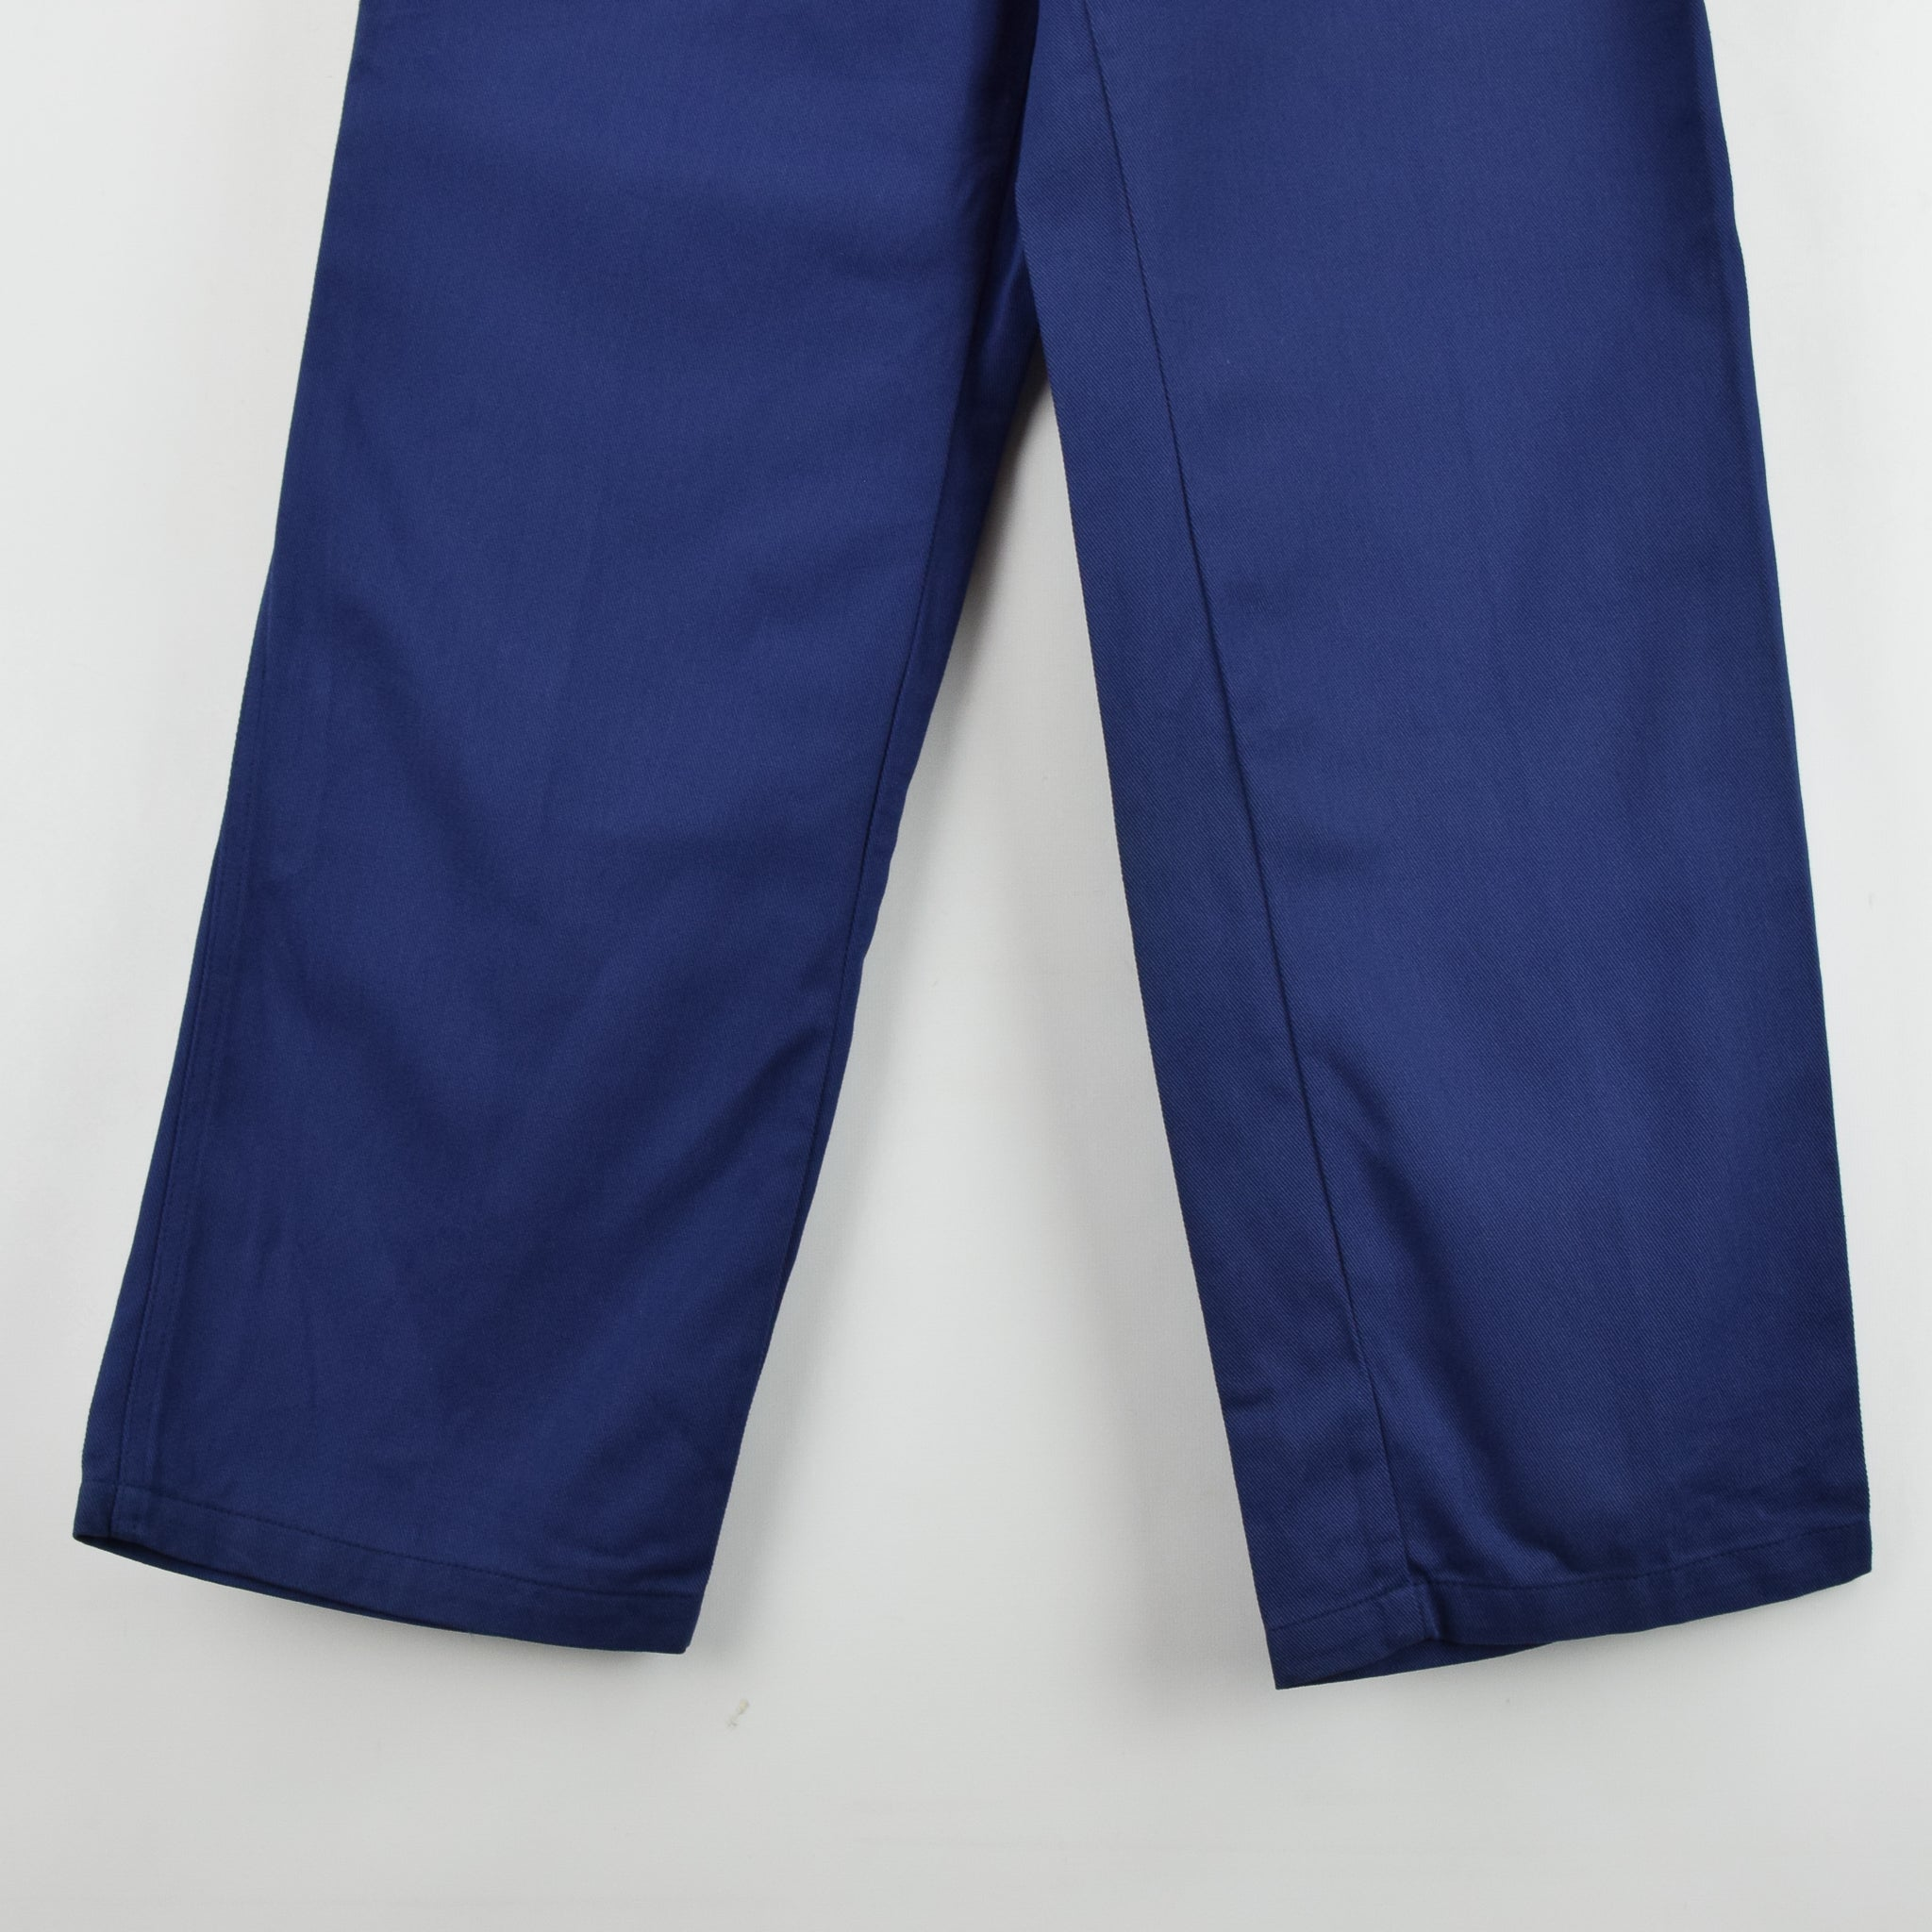 Vintage Workwear Deadstock Blue French Style Work Utility Trousers 32 W 32 L front hem